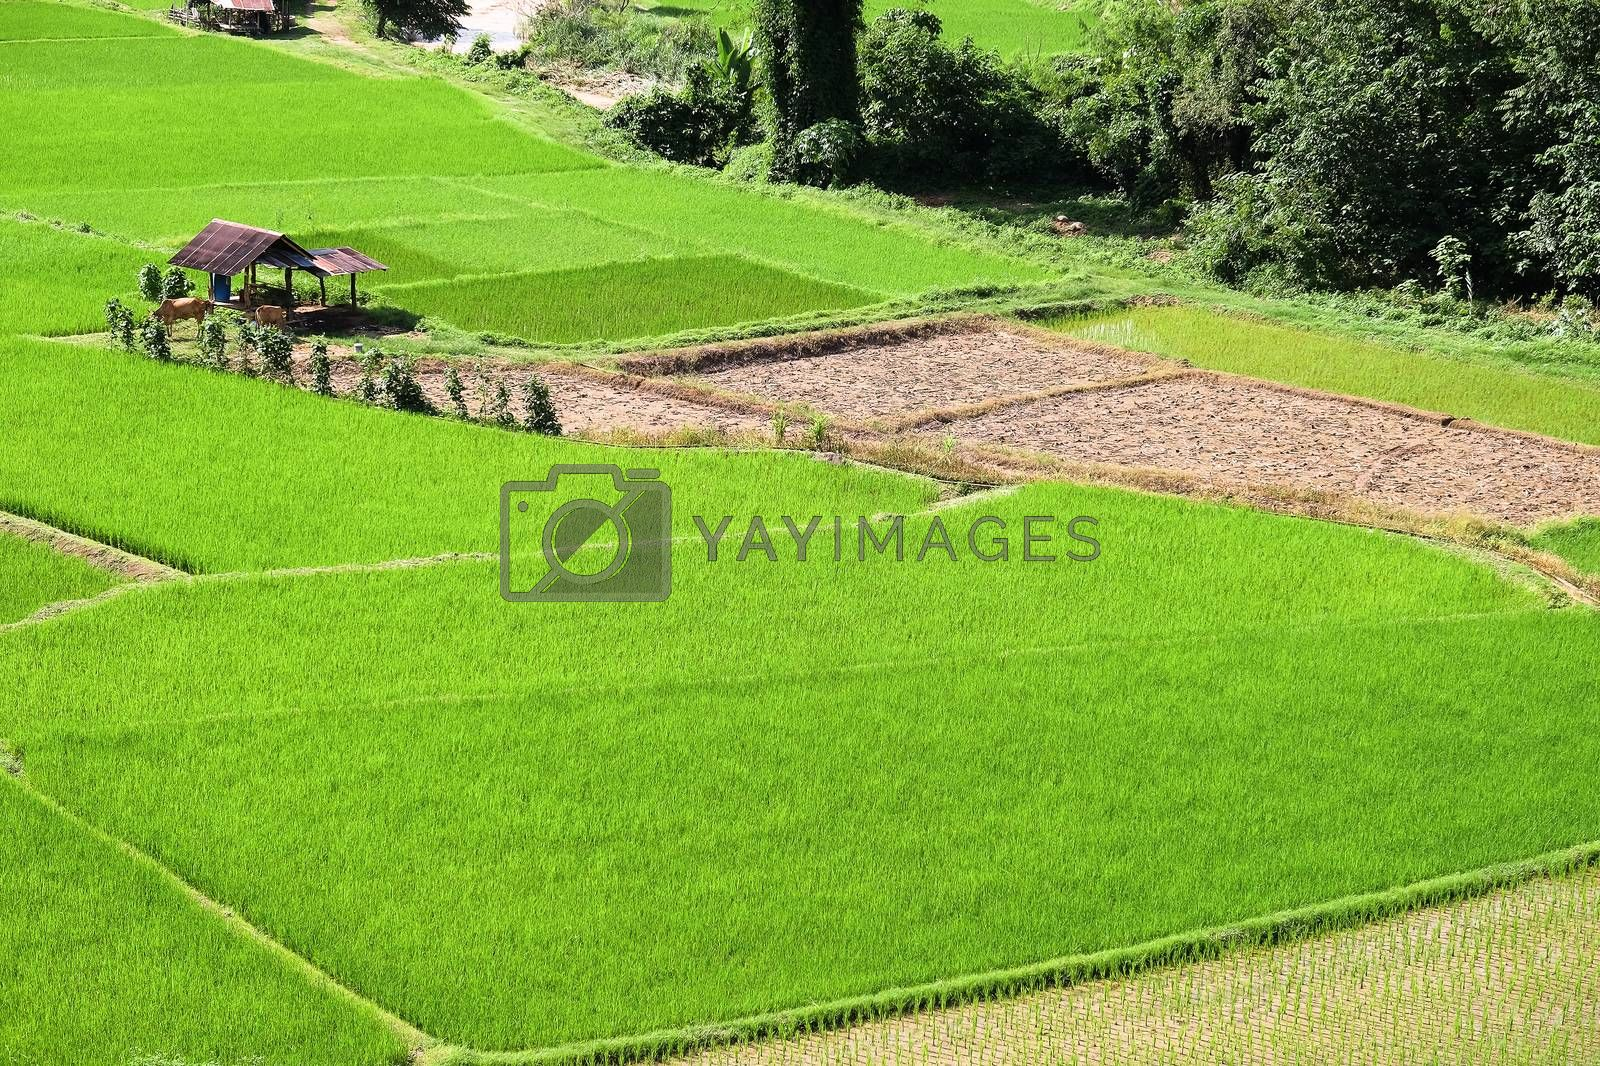 Landscape view of green Rice field in Pua district, Nan province, Thailand